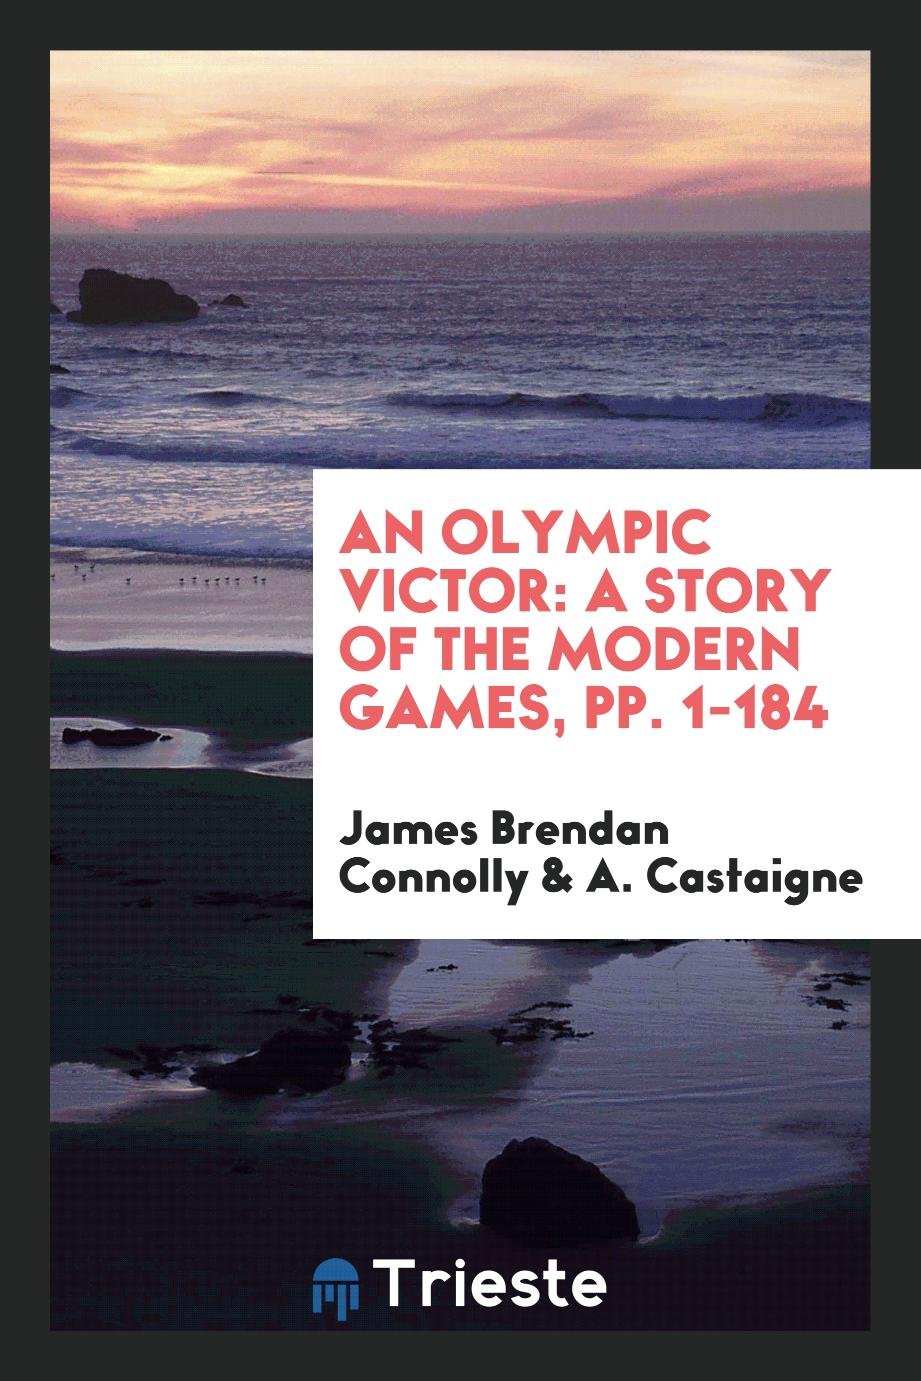 An Olympic Victor: A Story of the Modern Games, pp. 1-184